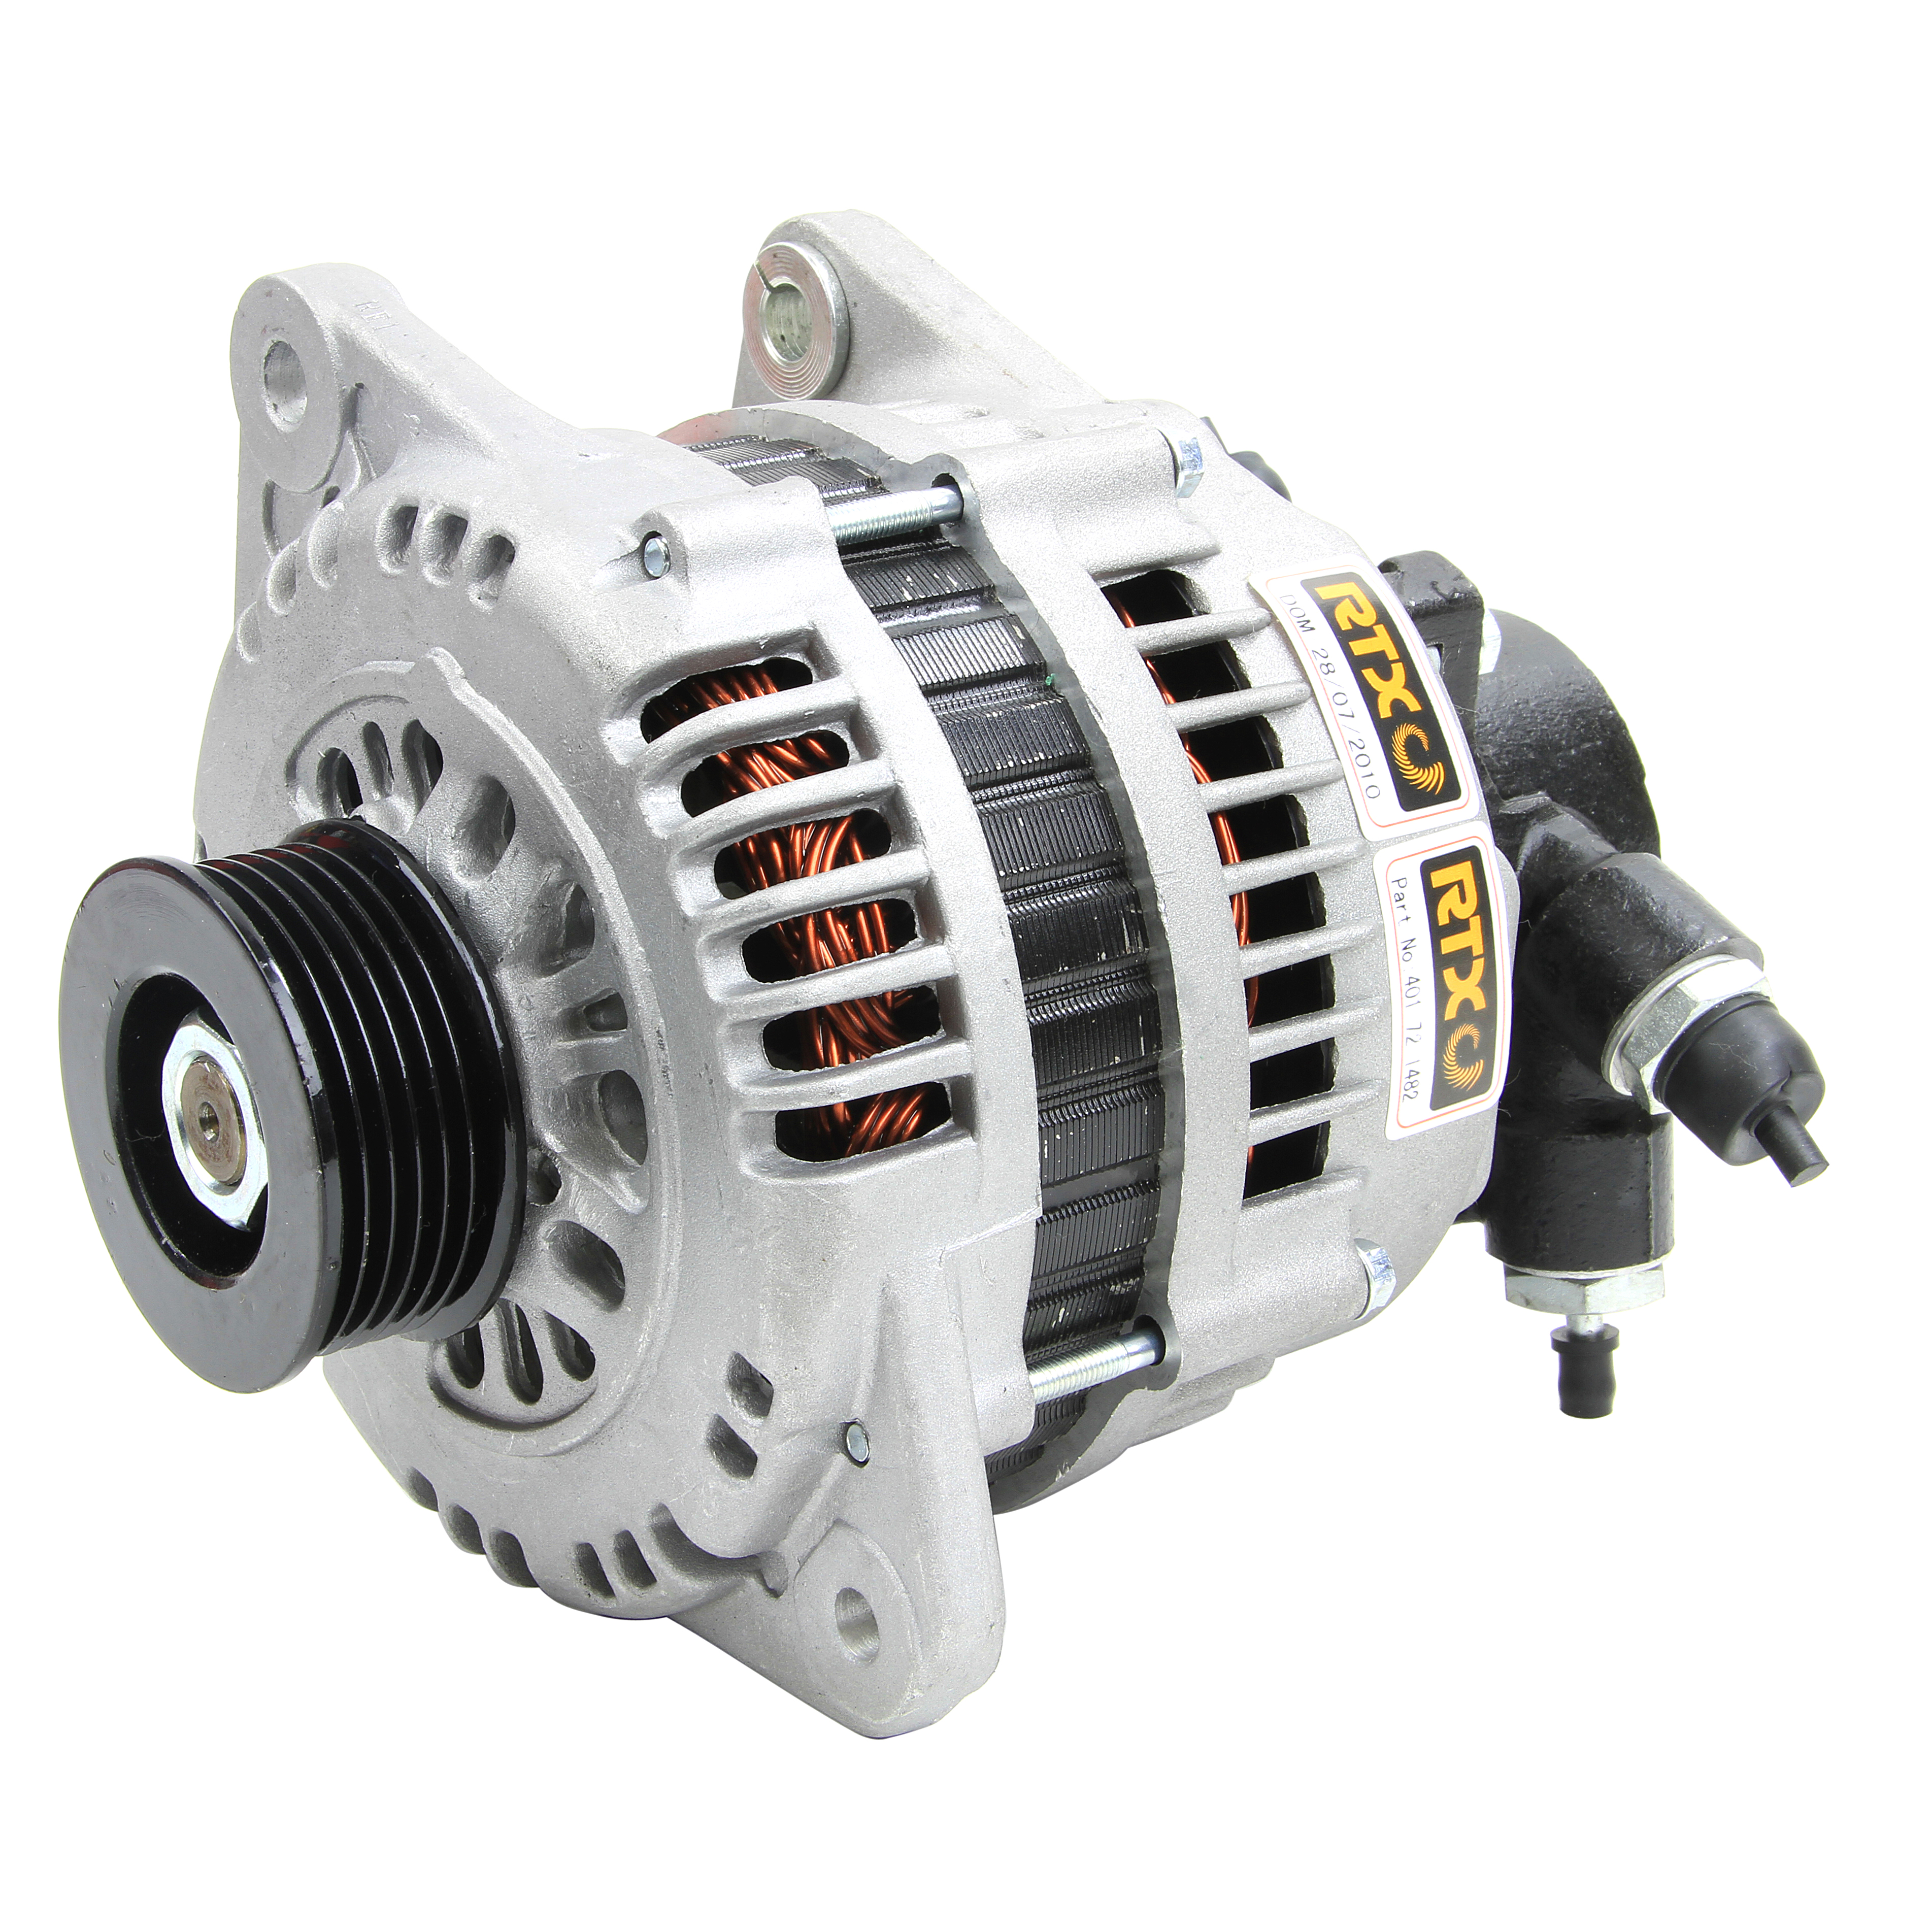 Car Engine Electrical Alternator 100a Amps Replacement Part Rtx